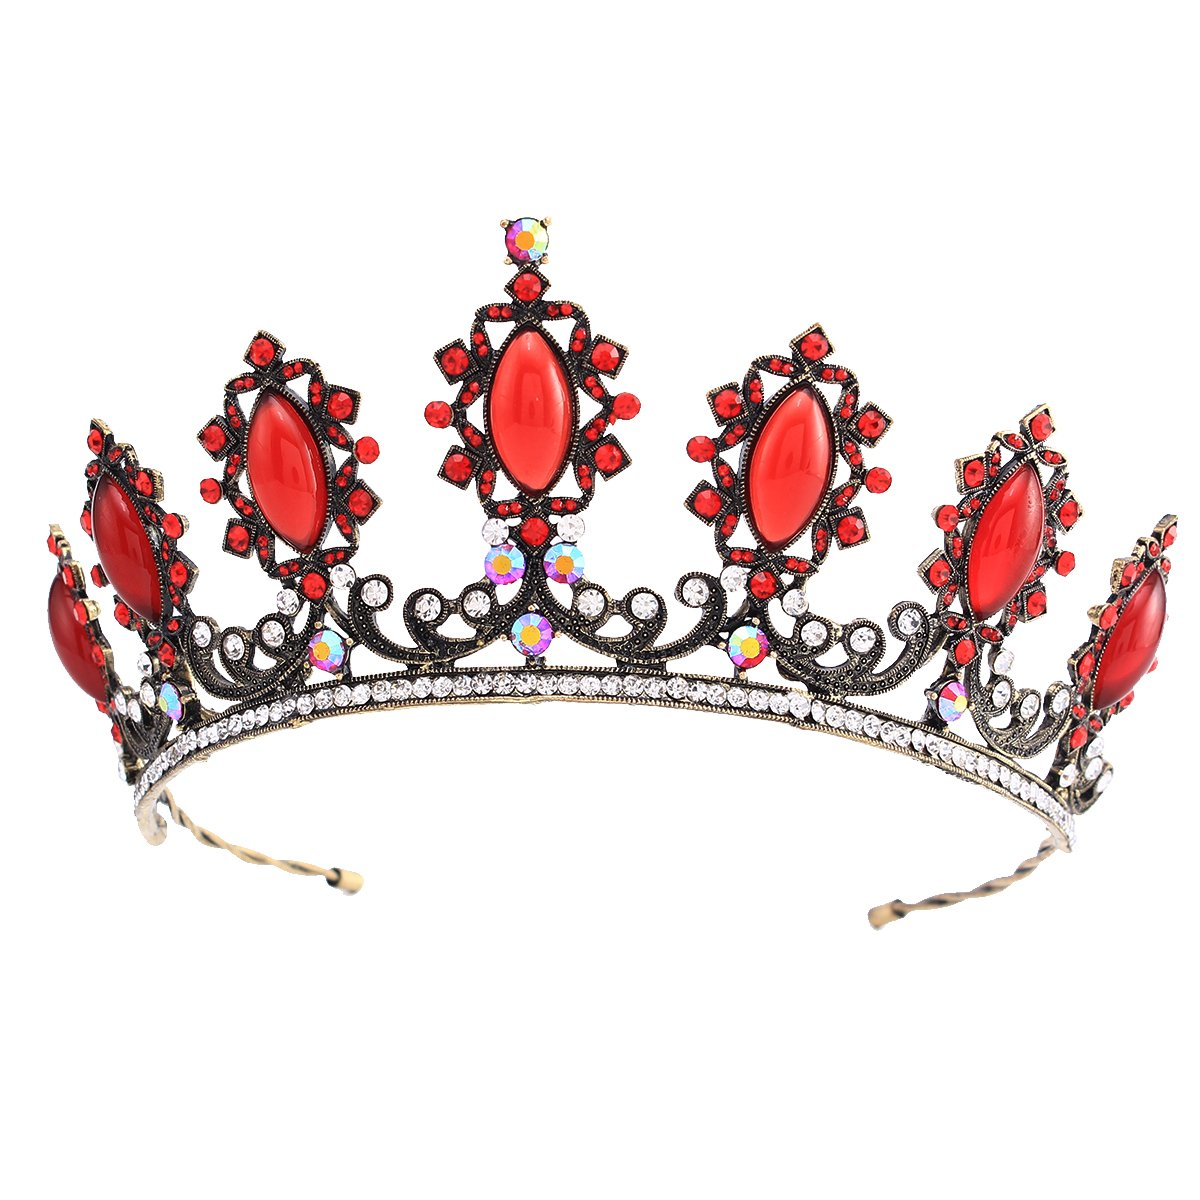 Stuffwhoesale Vintage Oval Ruby Crown with Drop Earring Jewelry Set by Stuffwholesale (Image #3)